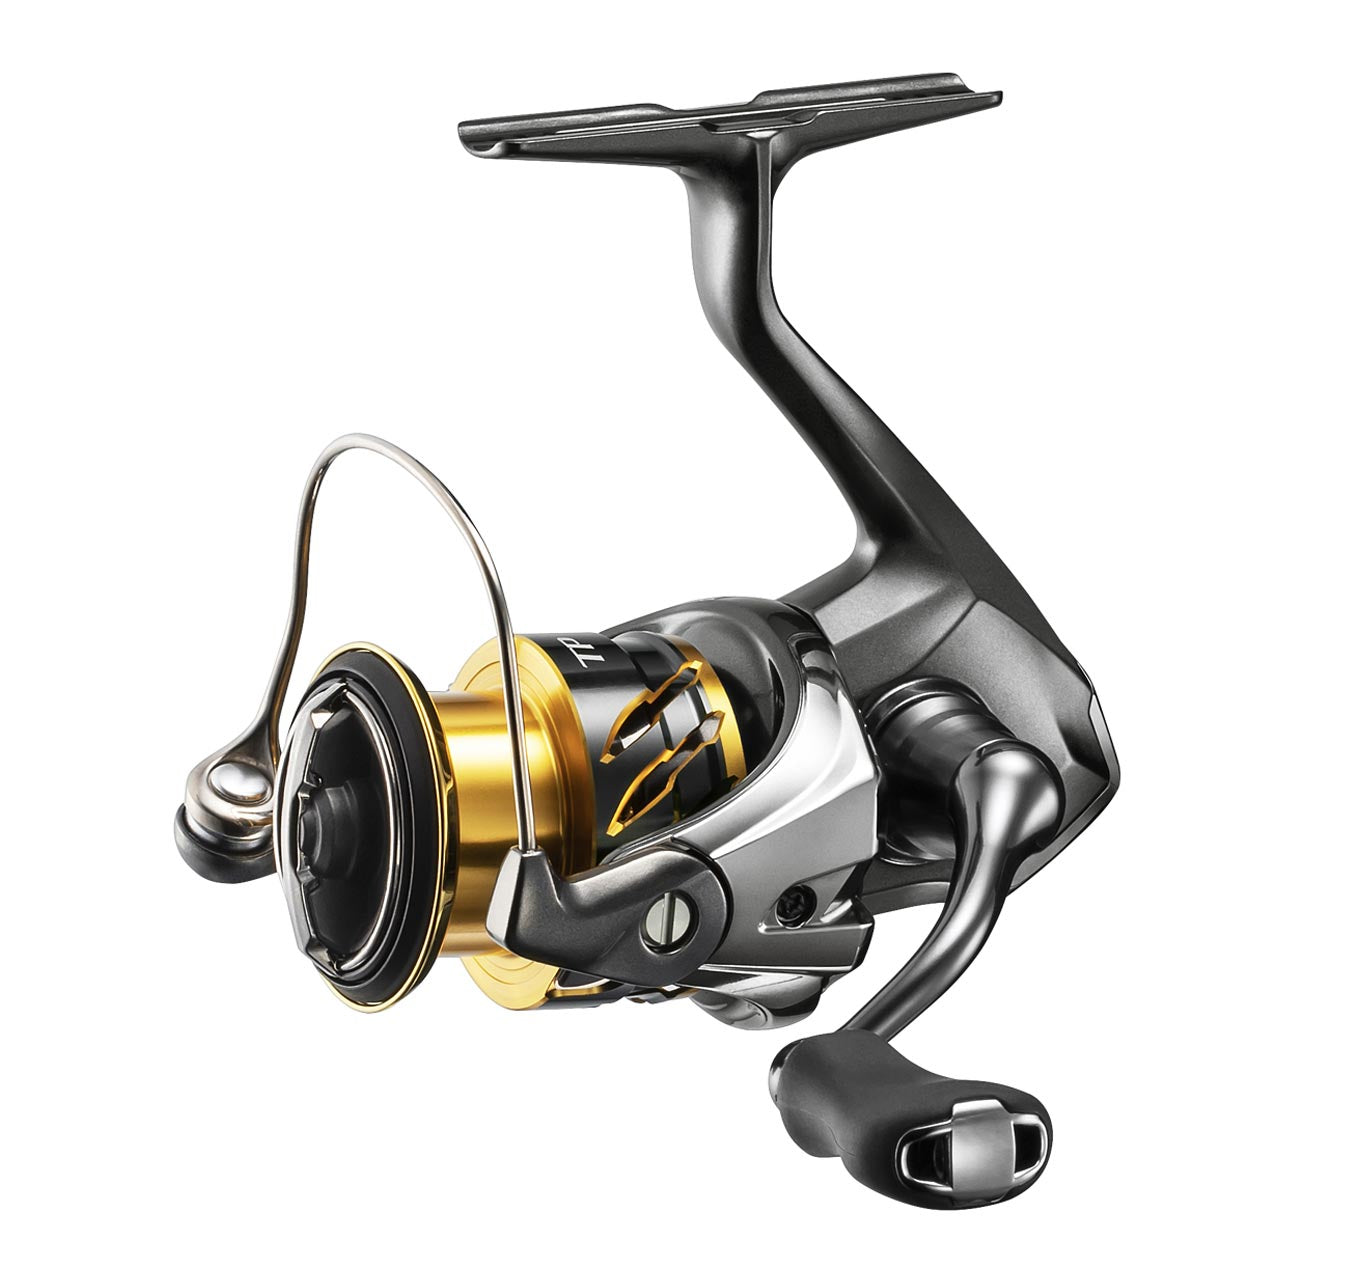 Shimano Twin Power FD 1000 Reel